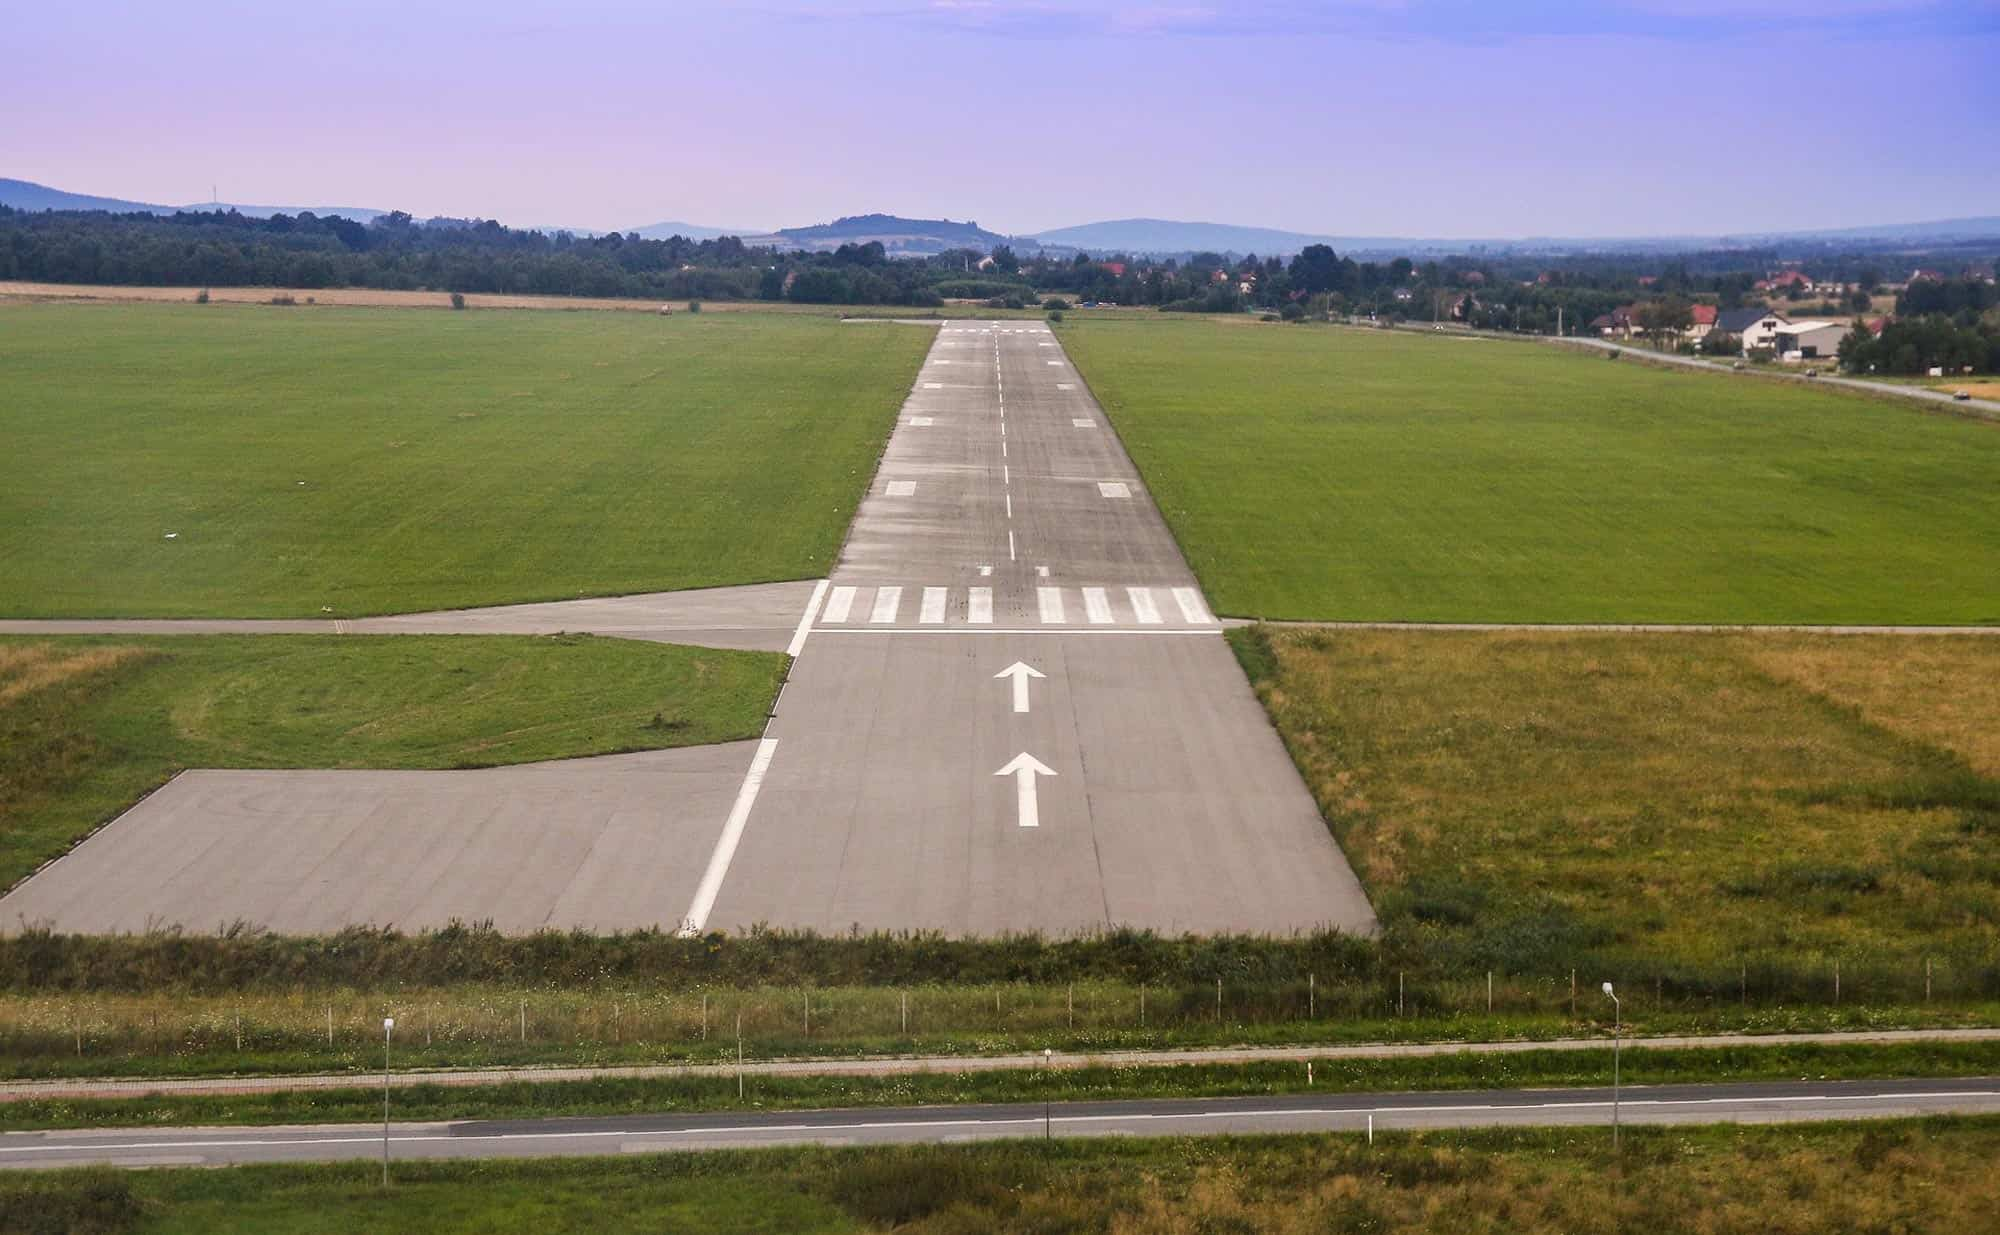 Private Jet Airport Runway